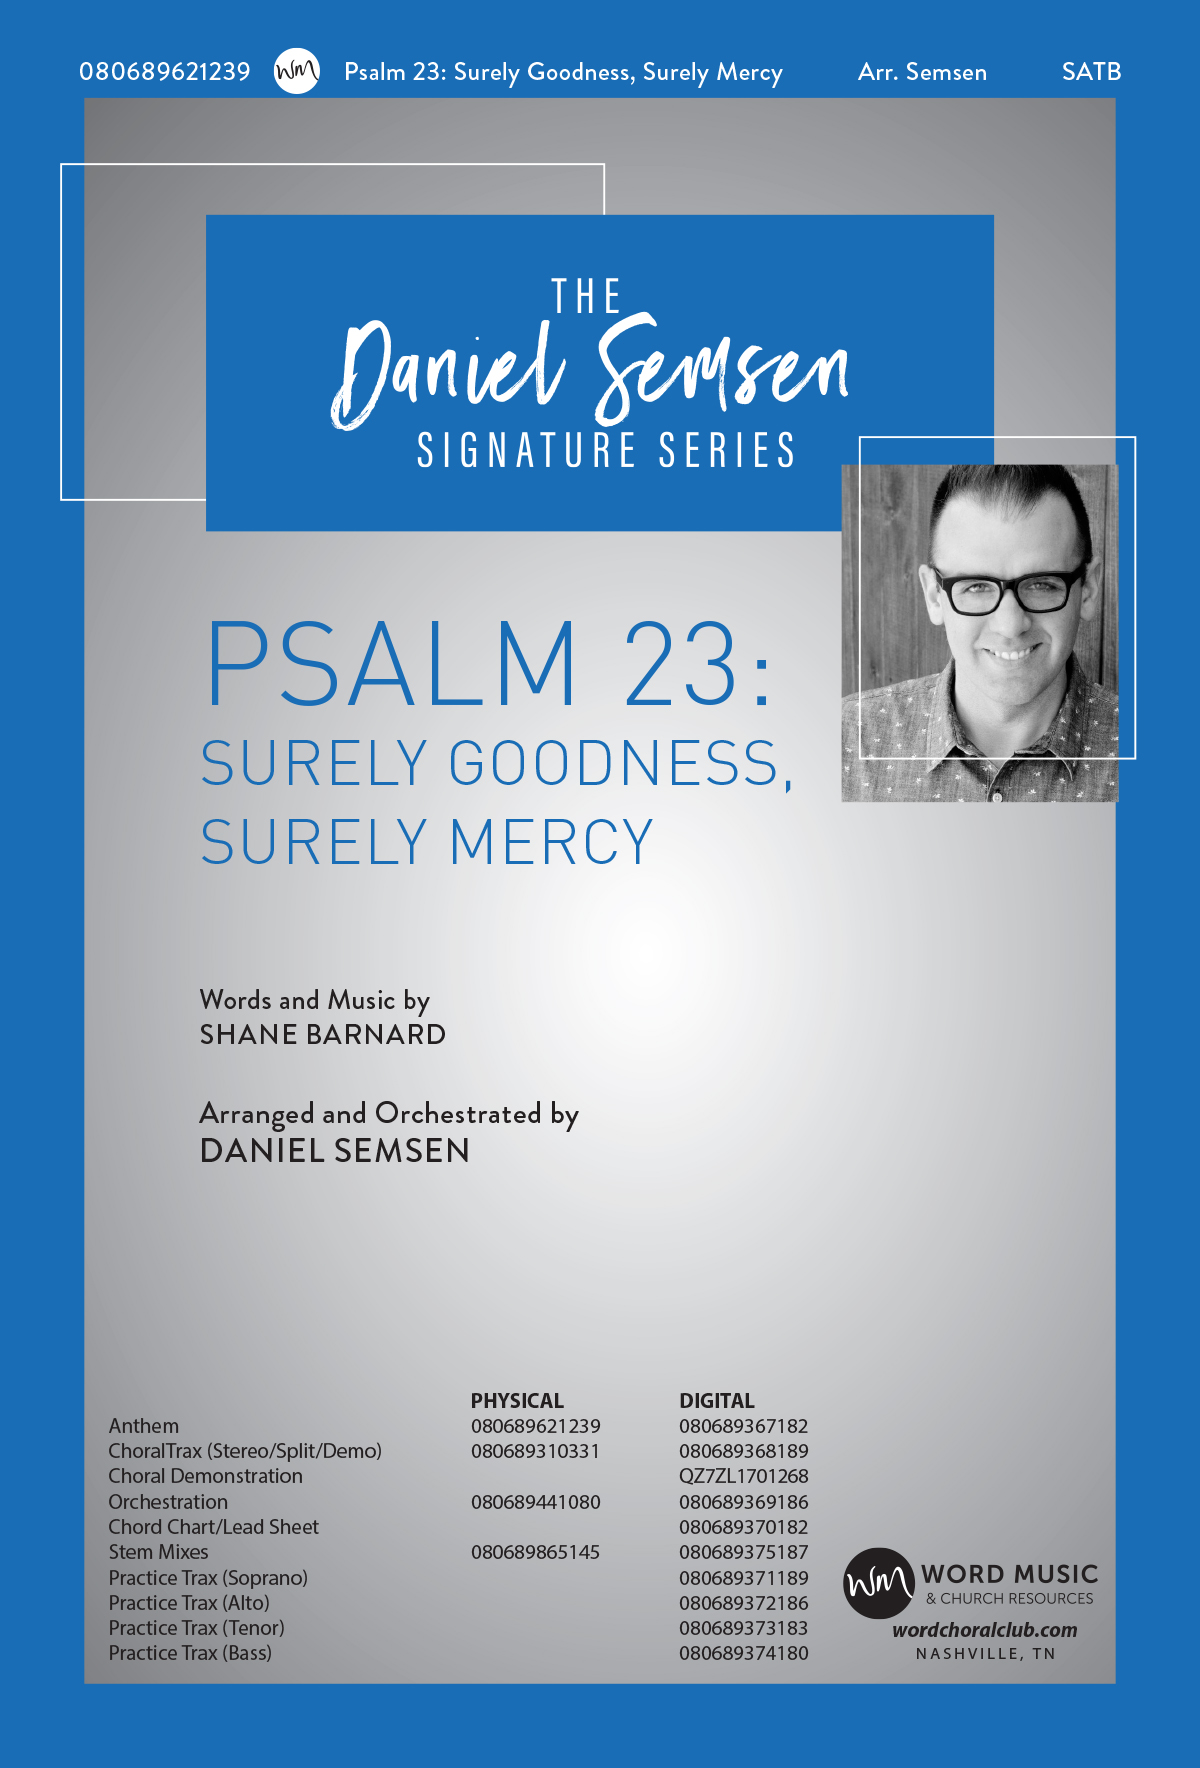 Psalm 23: Surely Goodness, Surely Mercy